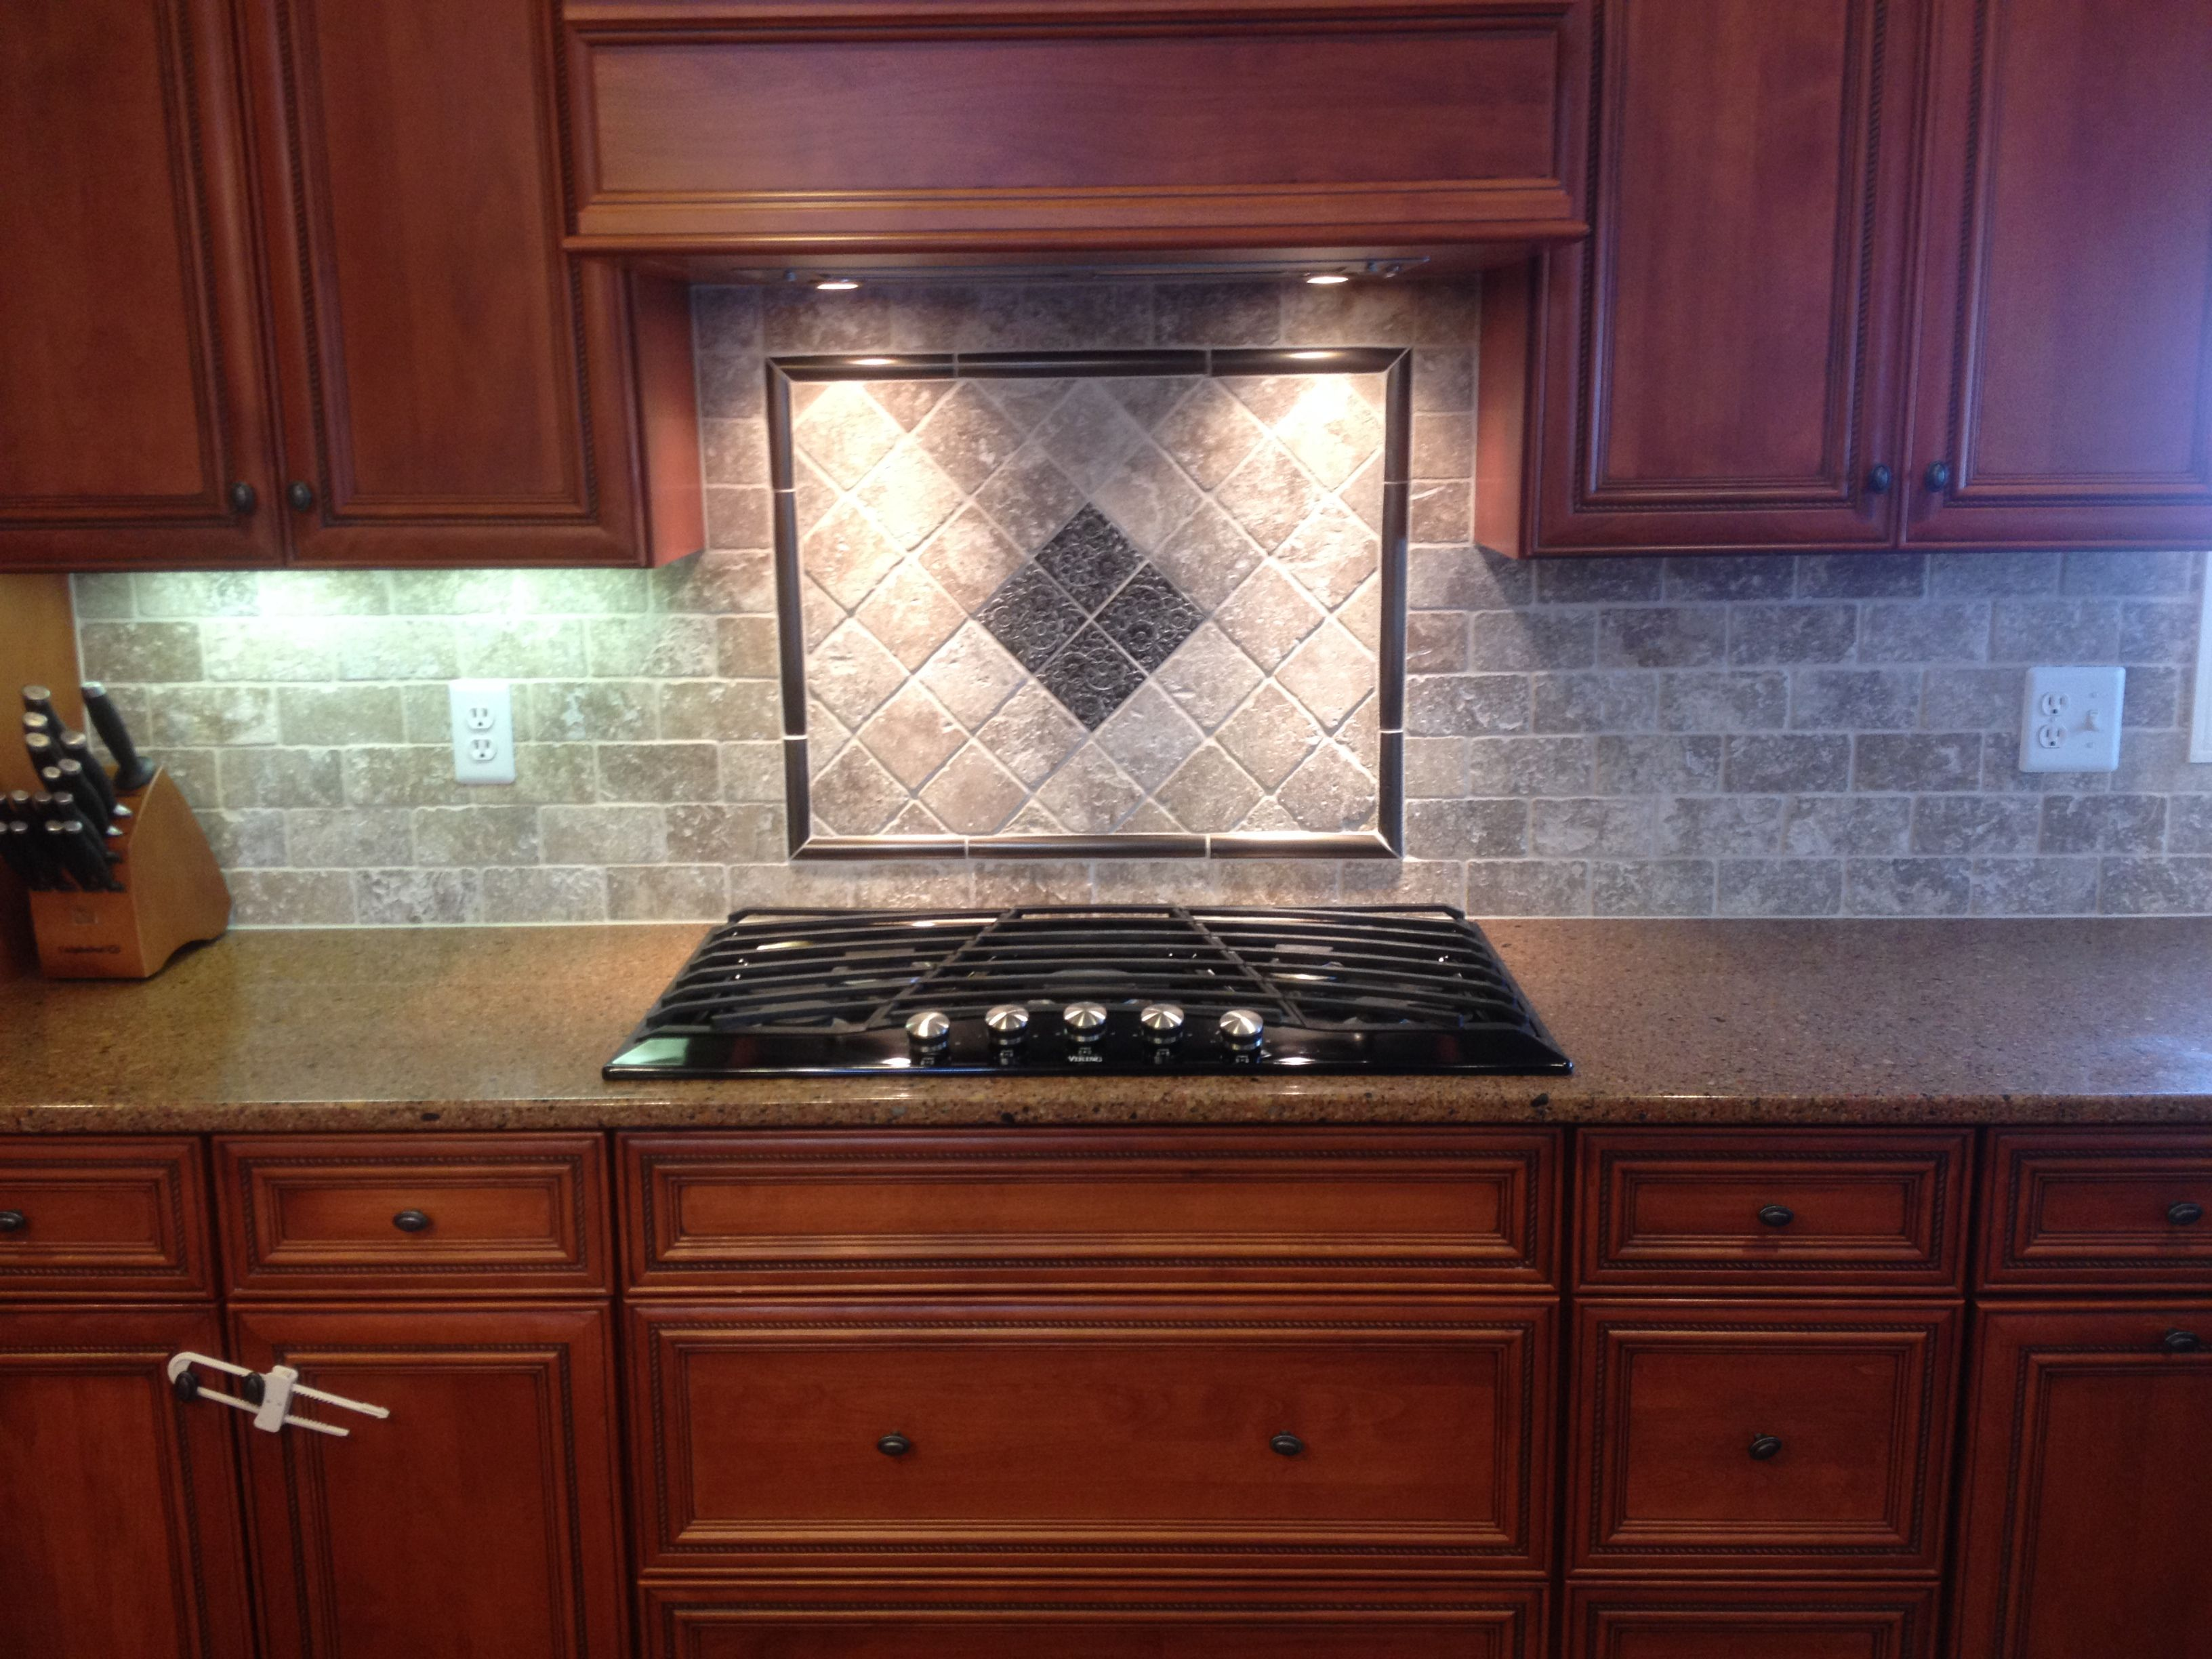 New Tile Backsplash With Mosaic Design Behind Cooktop Kitchens Pinterest Mosaic Designs